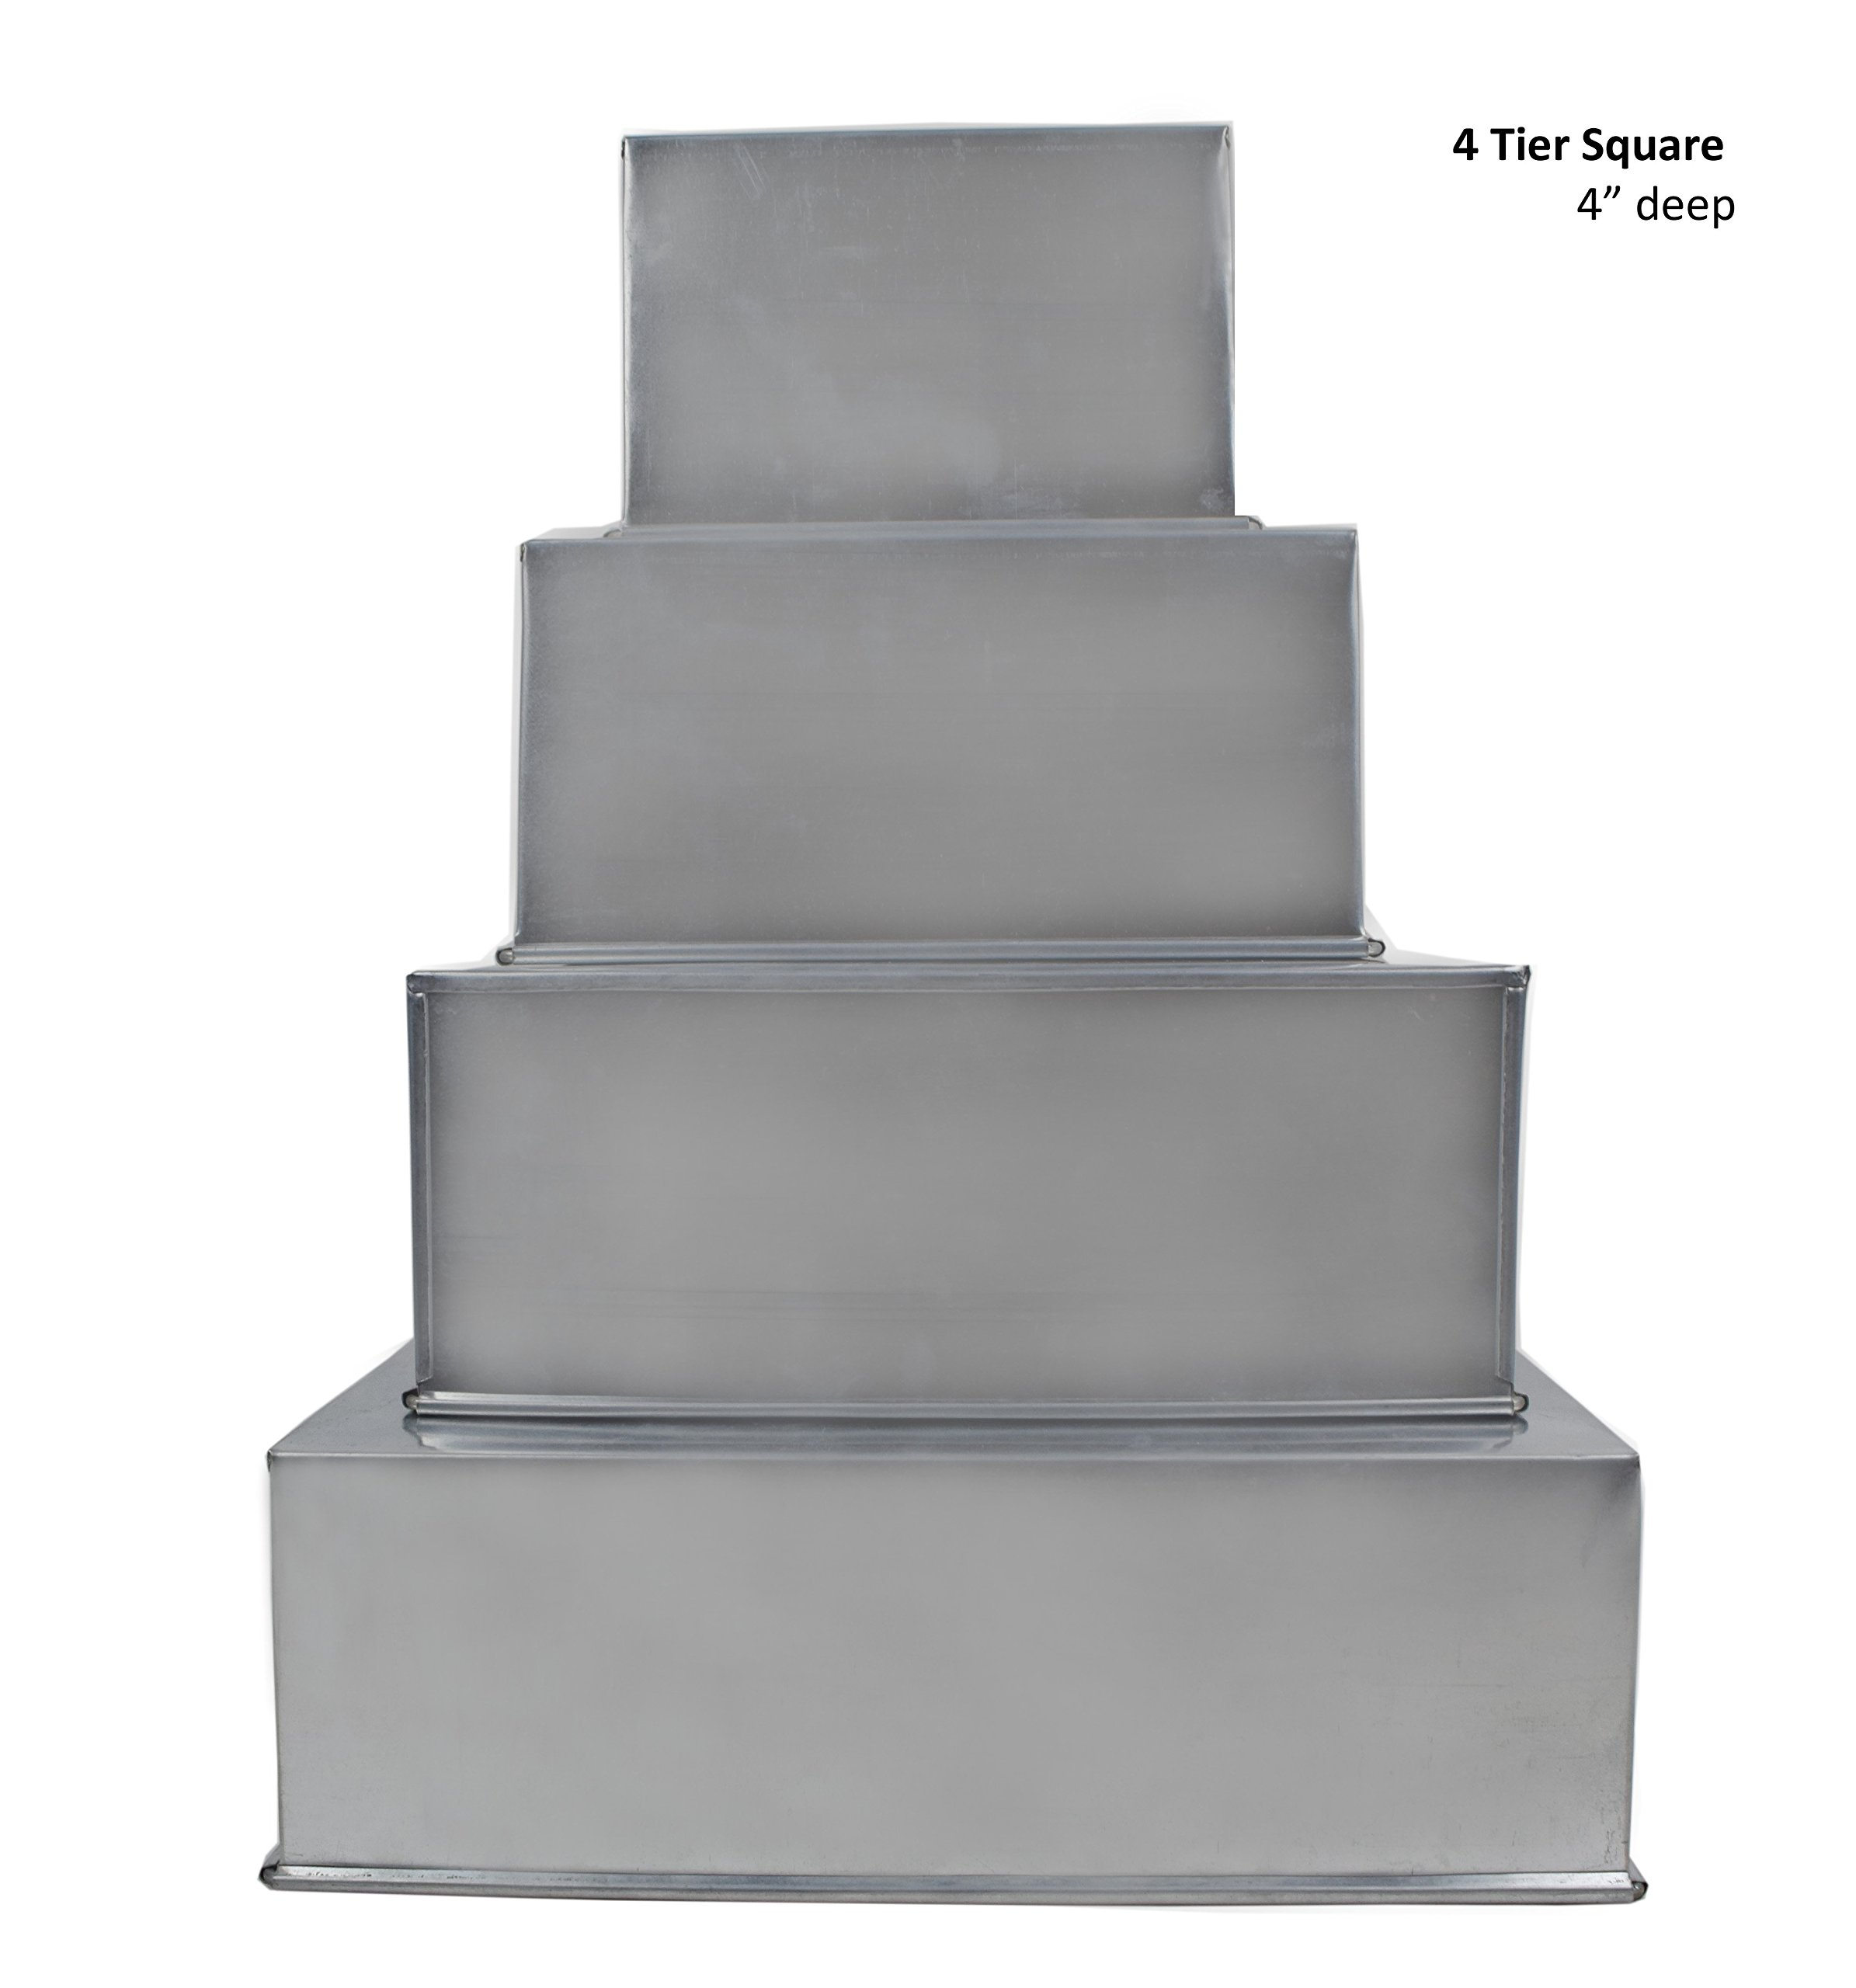 Square Multilayer Wedding Birthday Cake Baking Pan Set of 4 Cake Tins (4'' Deep)